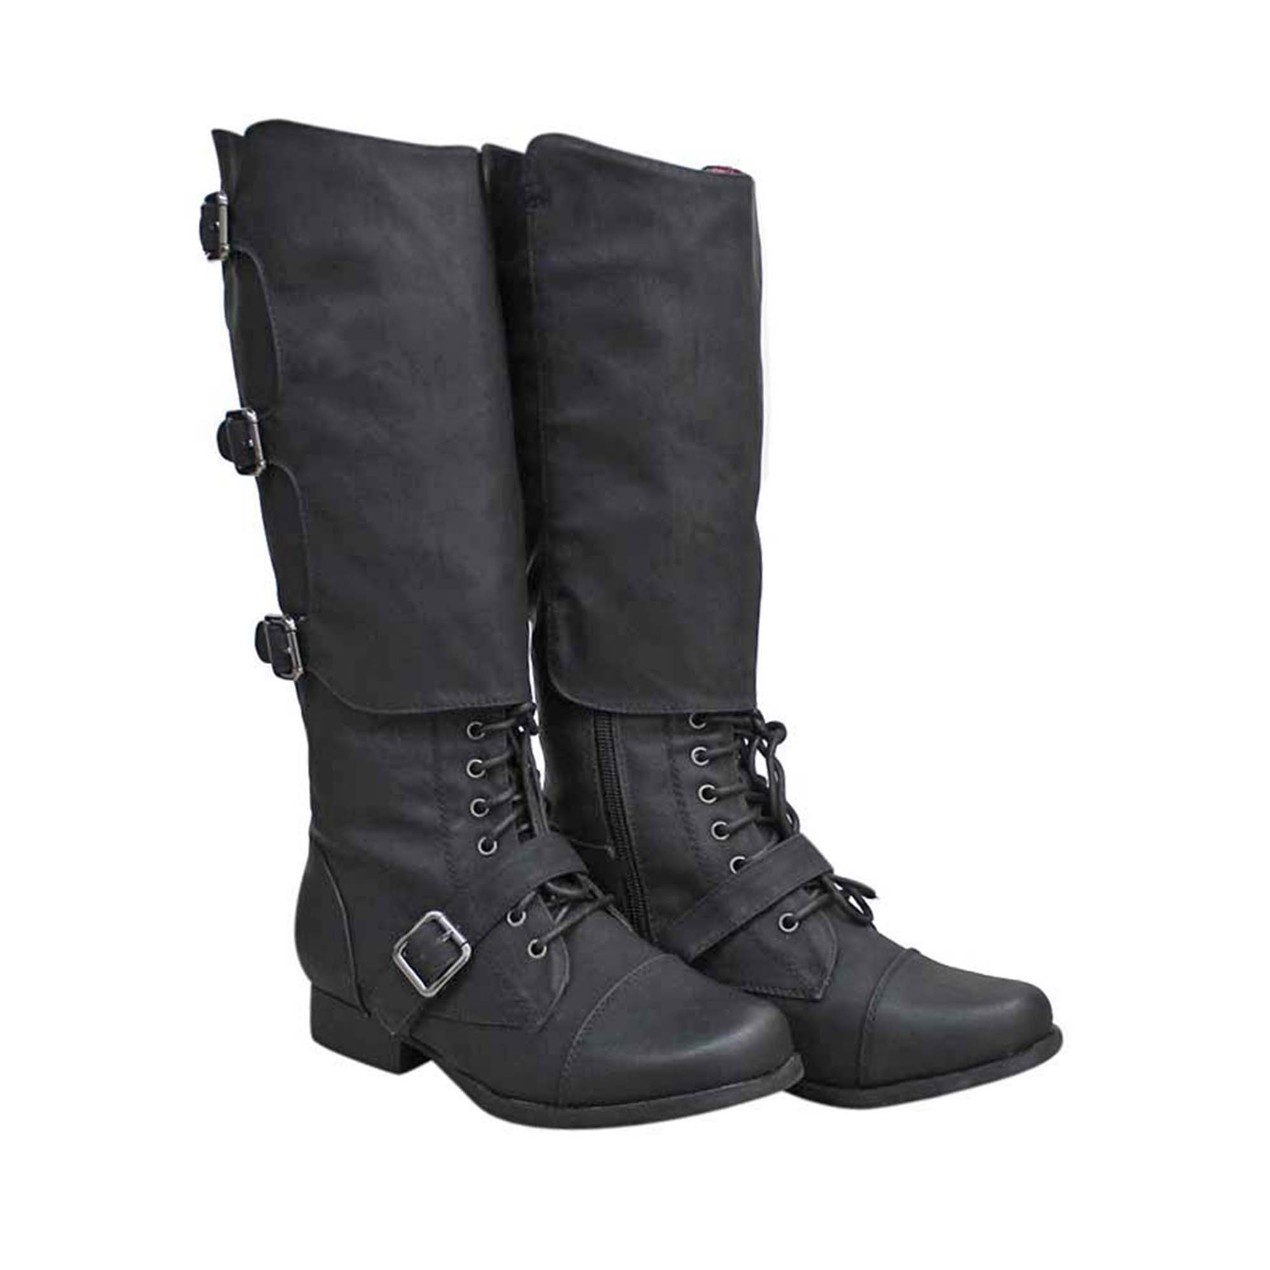 00866f49f77 Womens Black Tall Knee High Combat Boots With Flaps Size 5.5 - Tanga